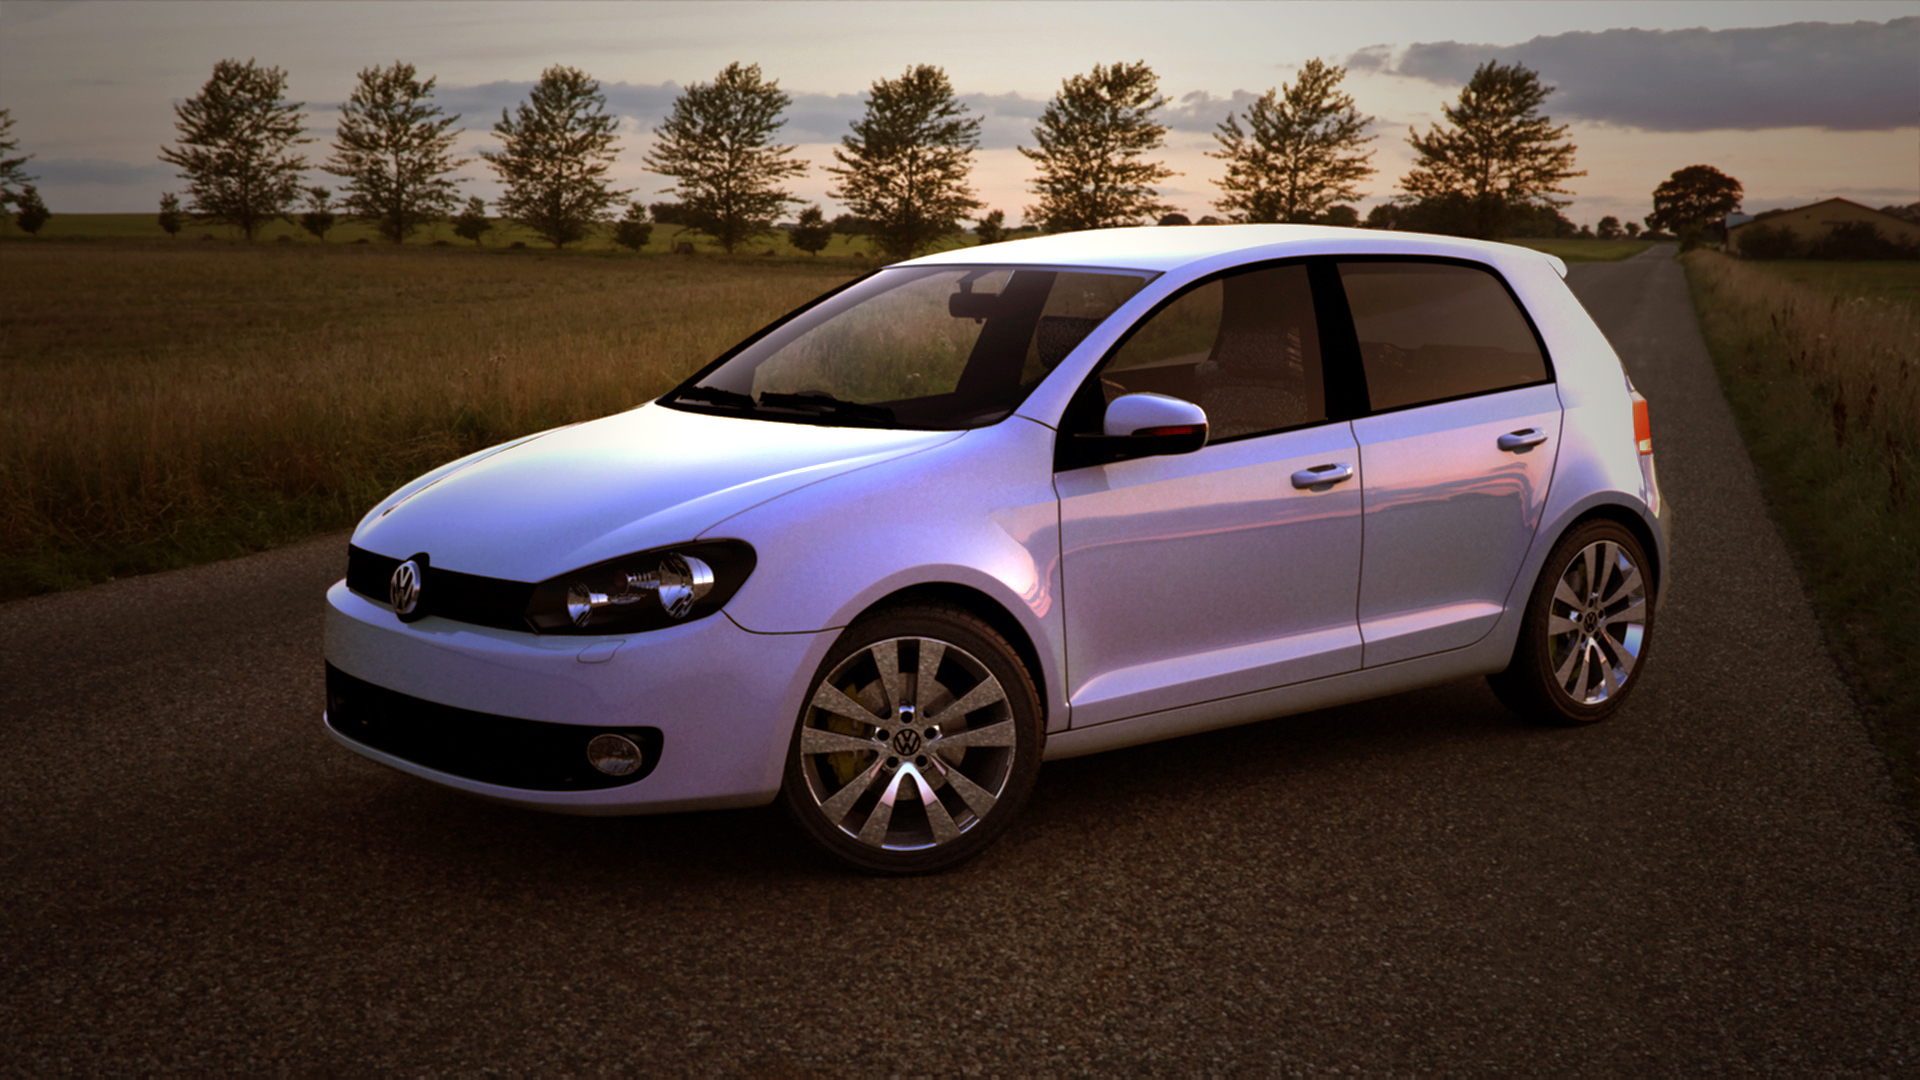 VW Golf 3d art